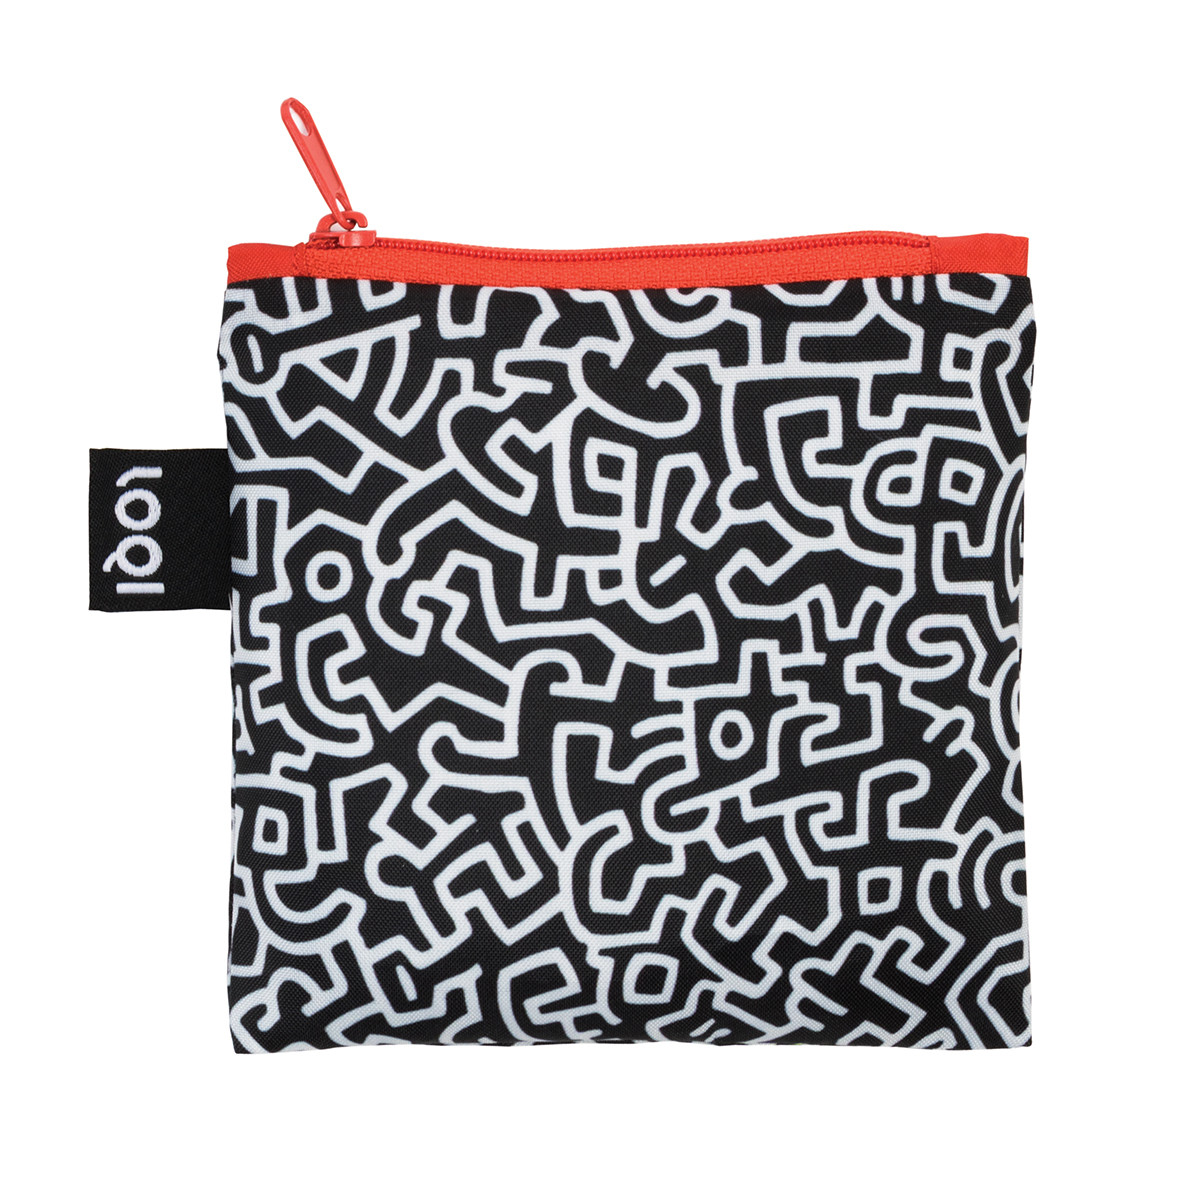 Shopping bag - museum collection by keith haring